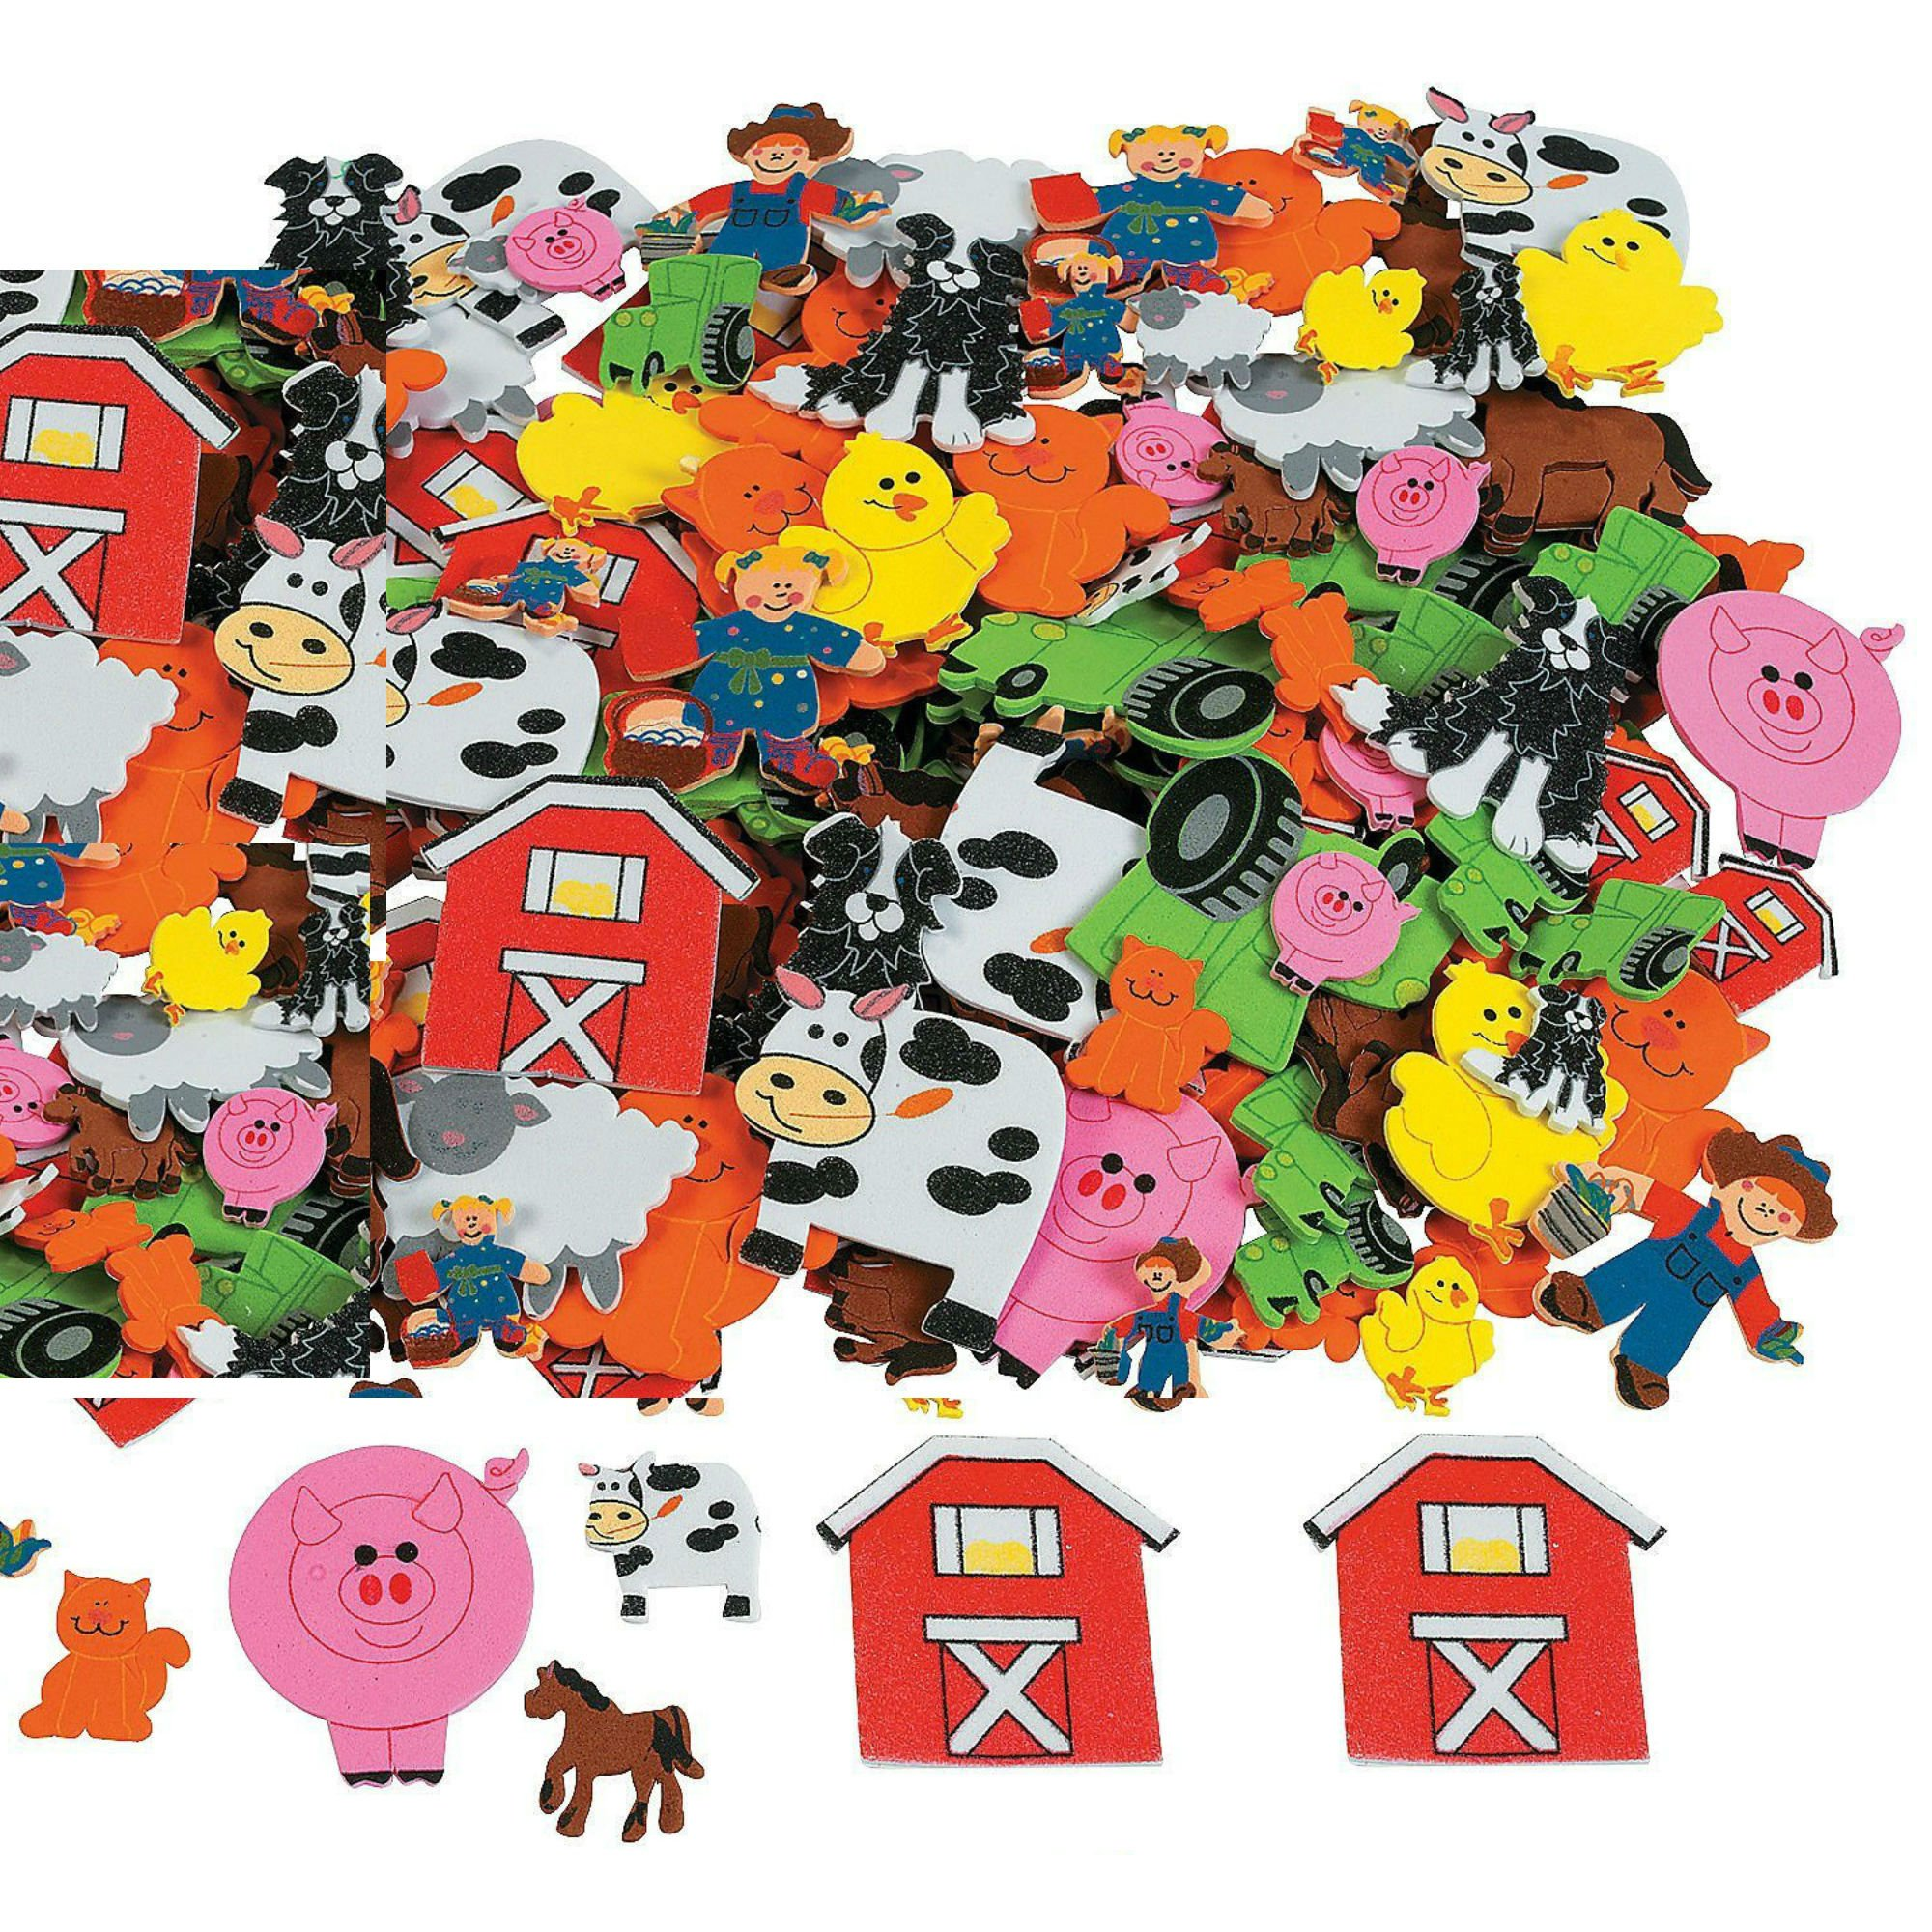 Play Kreative Foam Self-Adhesive Farm Shapes Stickers - Bulk 500 pcs - Kid's Craft Activities, Scapbooking & Card Making - Includes Animals, Barn Accessories, Tractor and more